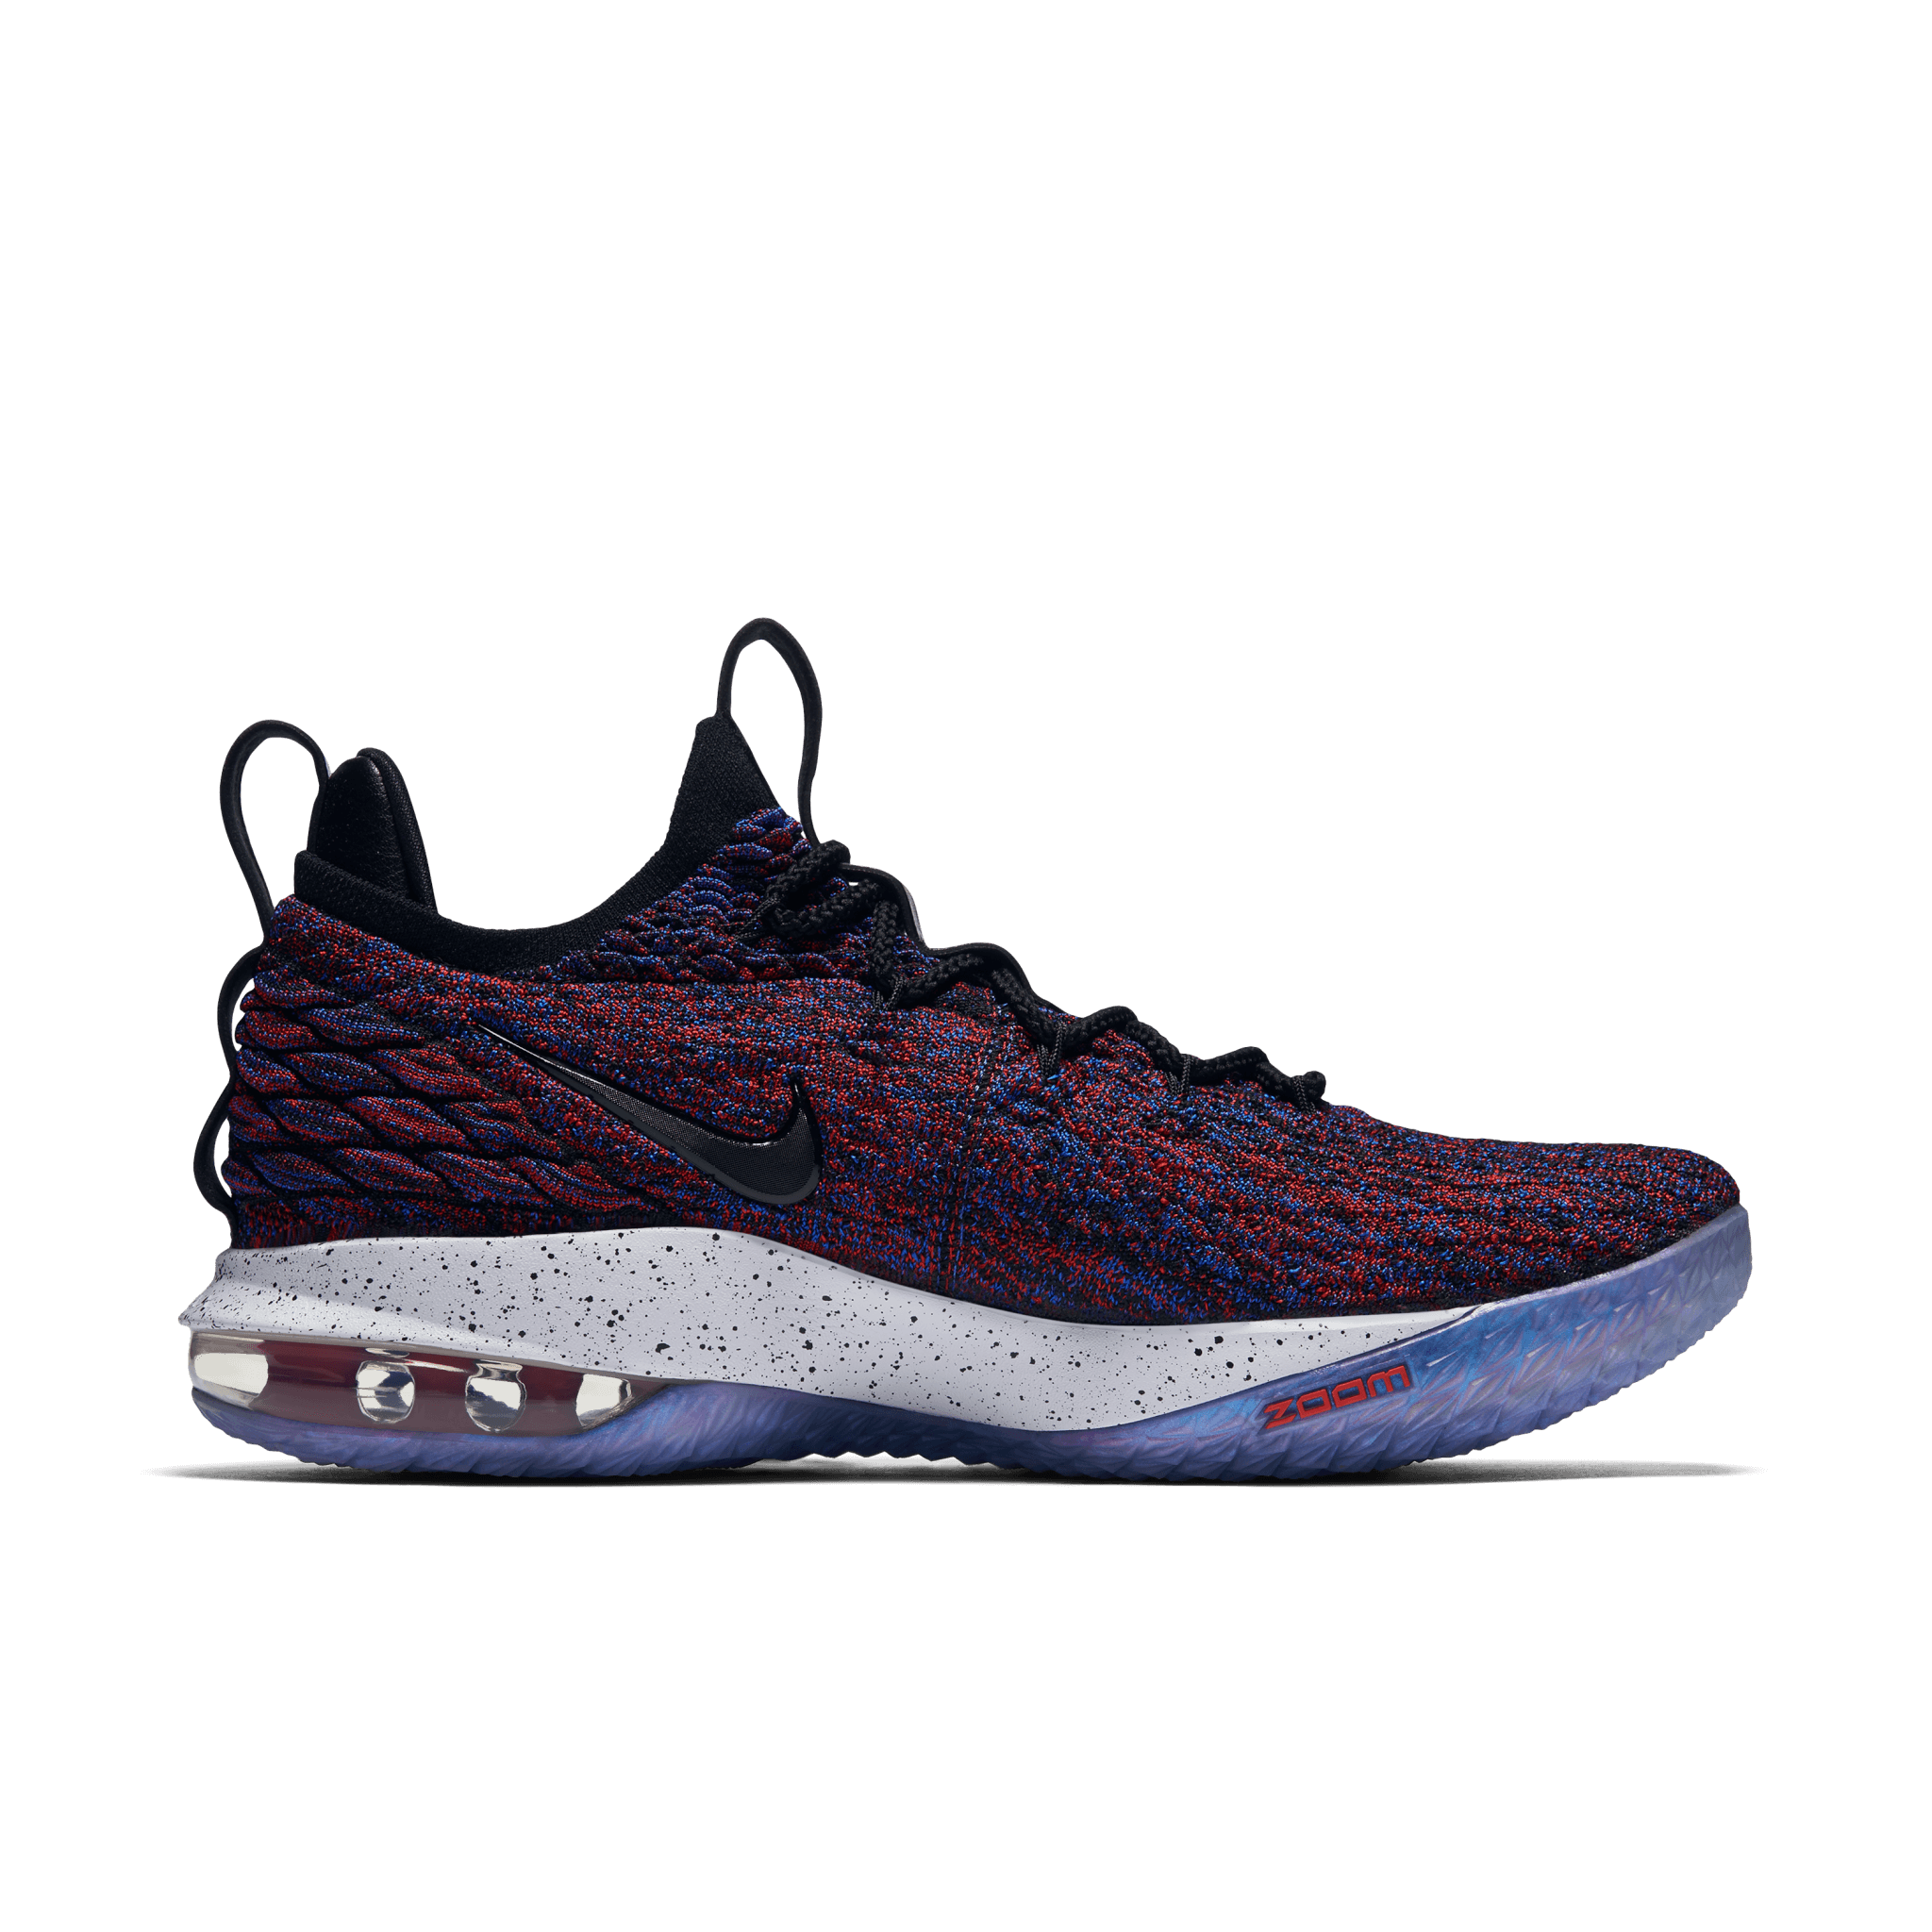 112945b821c67 Nike Lebron 15 Low Performance Review